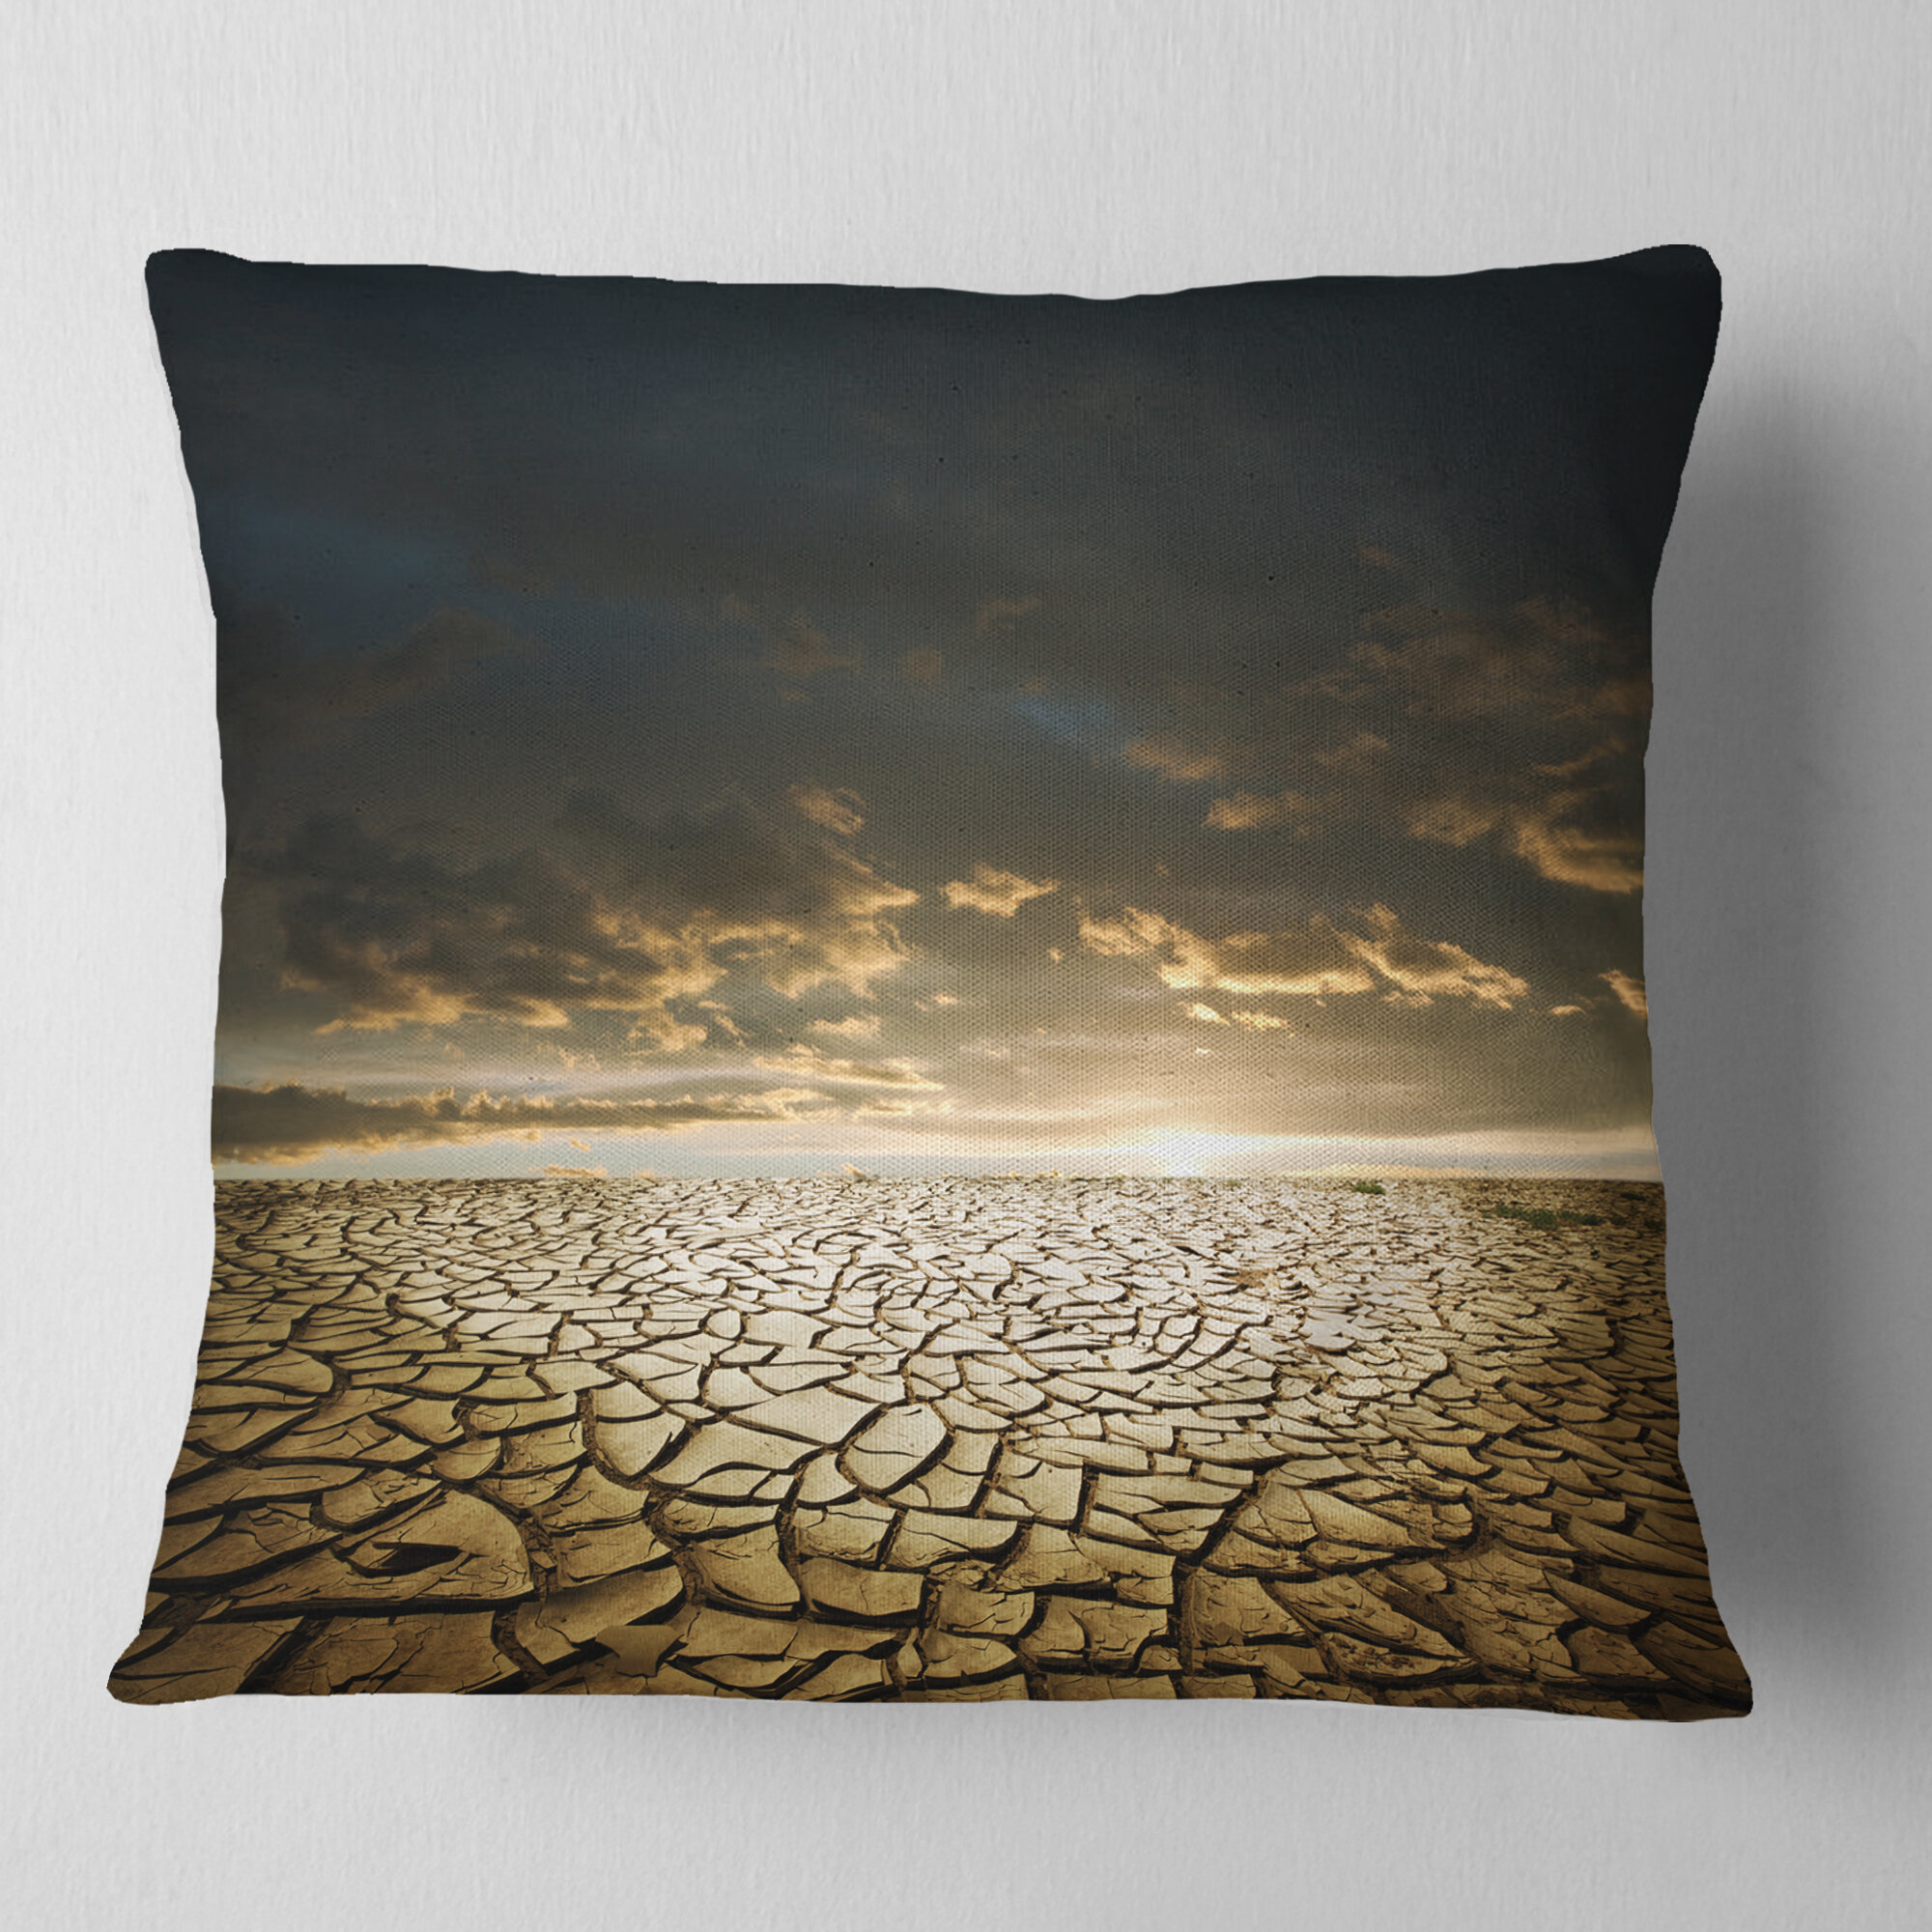 East Urban Home Drought Land Under Cloudy Skies Landscape Printed Pillow Wayfair